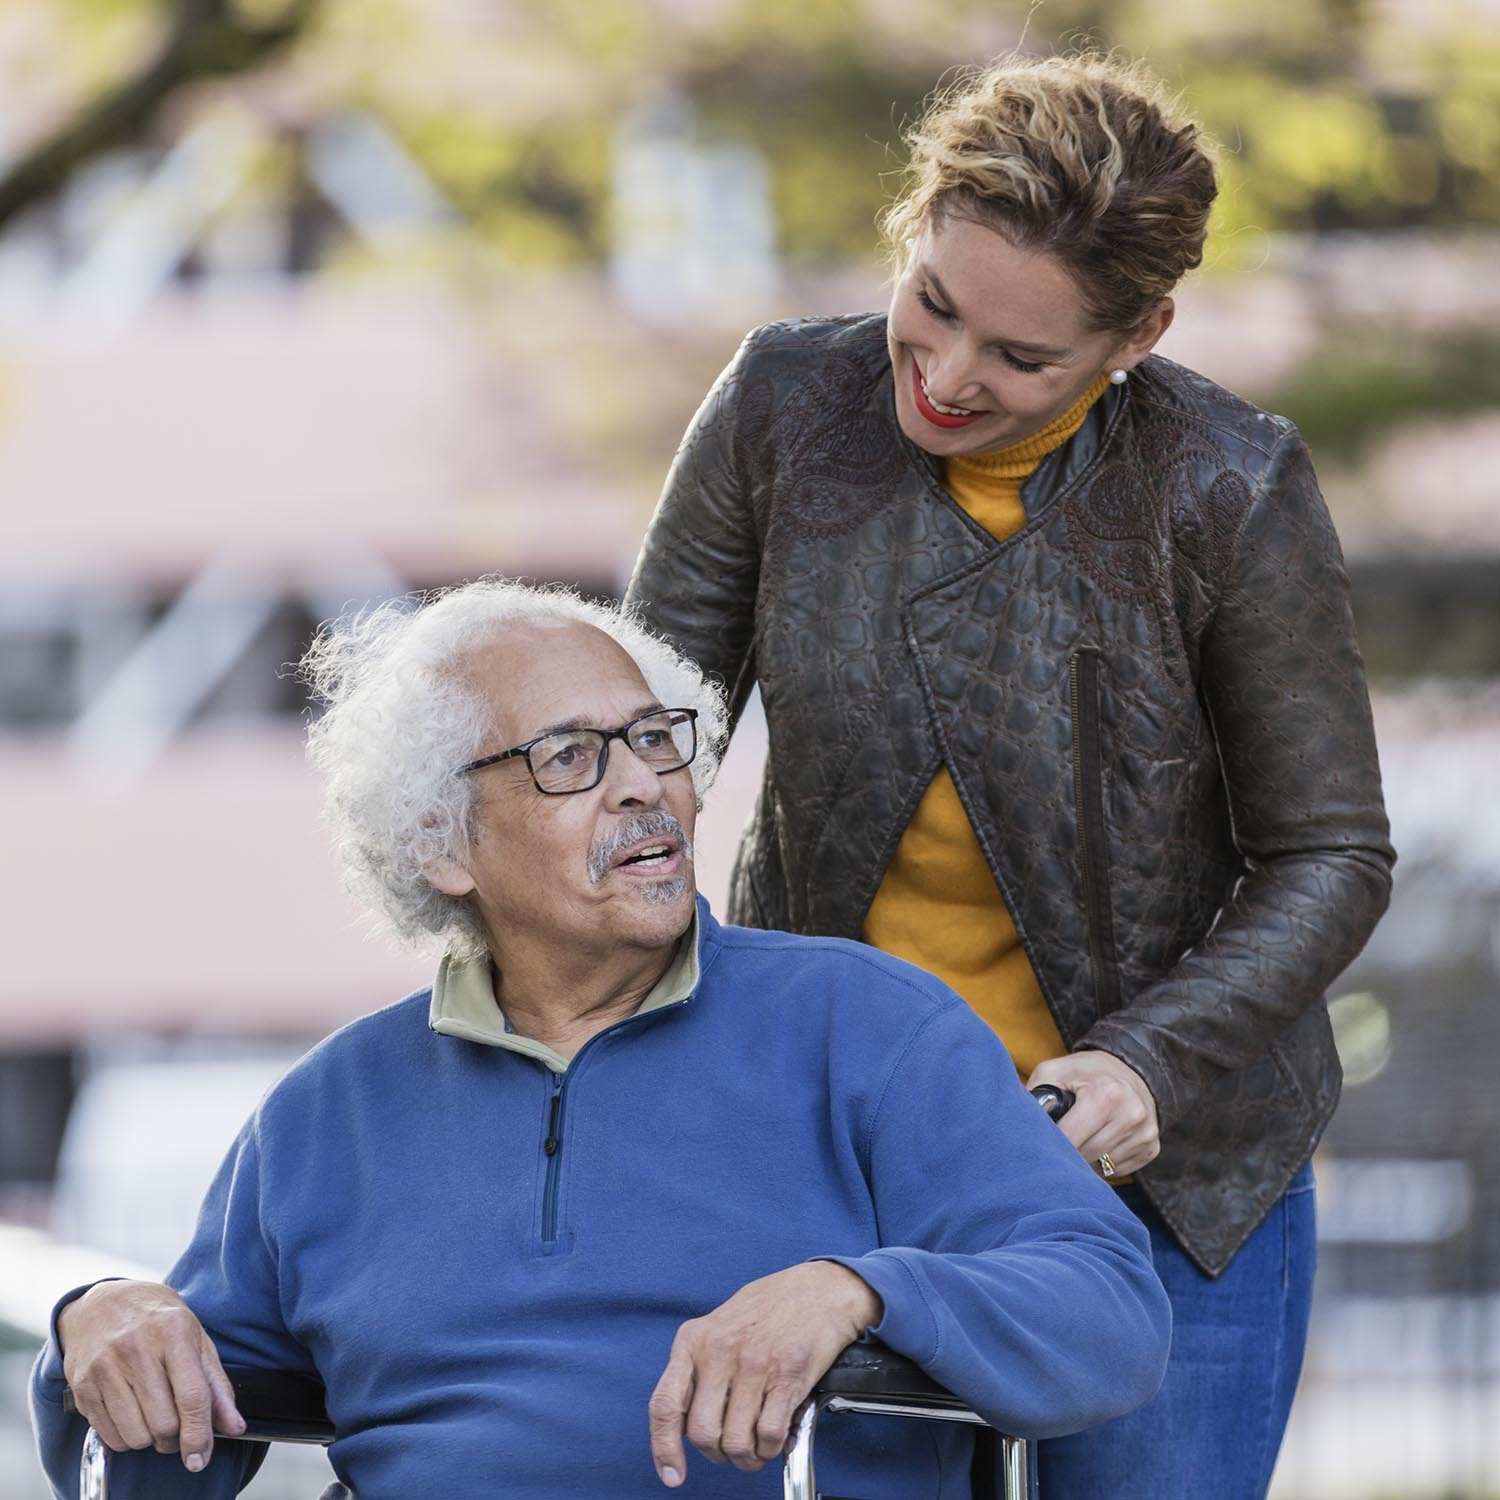 A senior Hispanic man in his 80s sitting in a wheelchair, talking to his adult daughter, who is in her 30s, pushing the wheelchair from behind. They are walking in a city park in fall, building out of focus in the background.